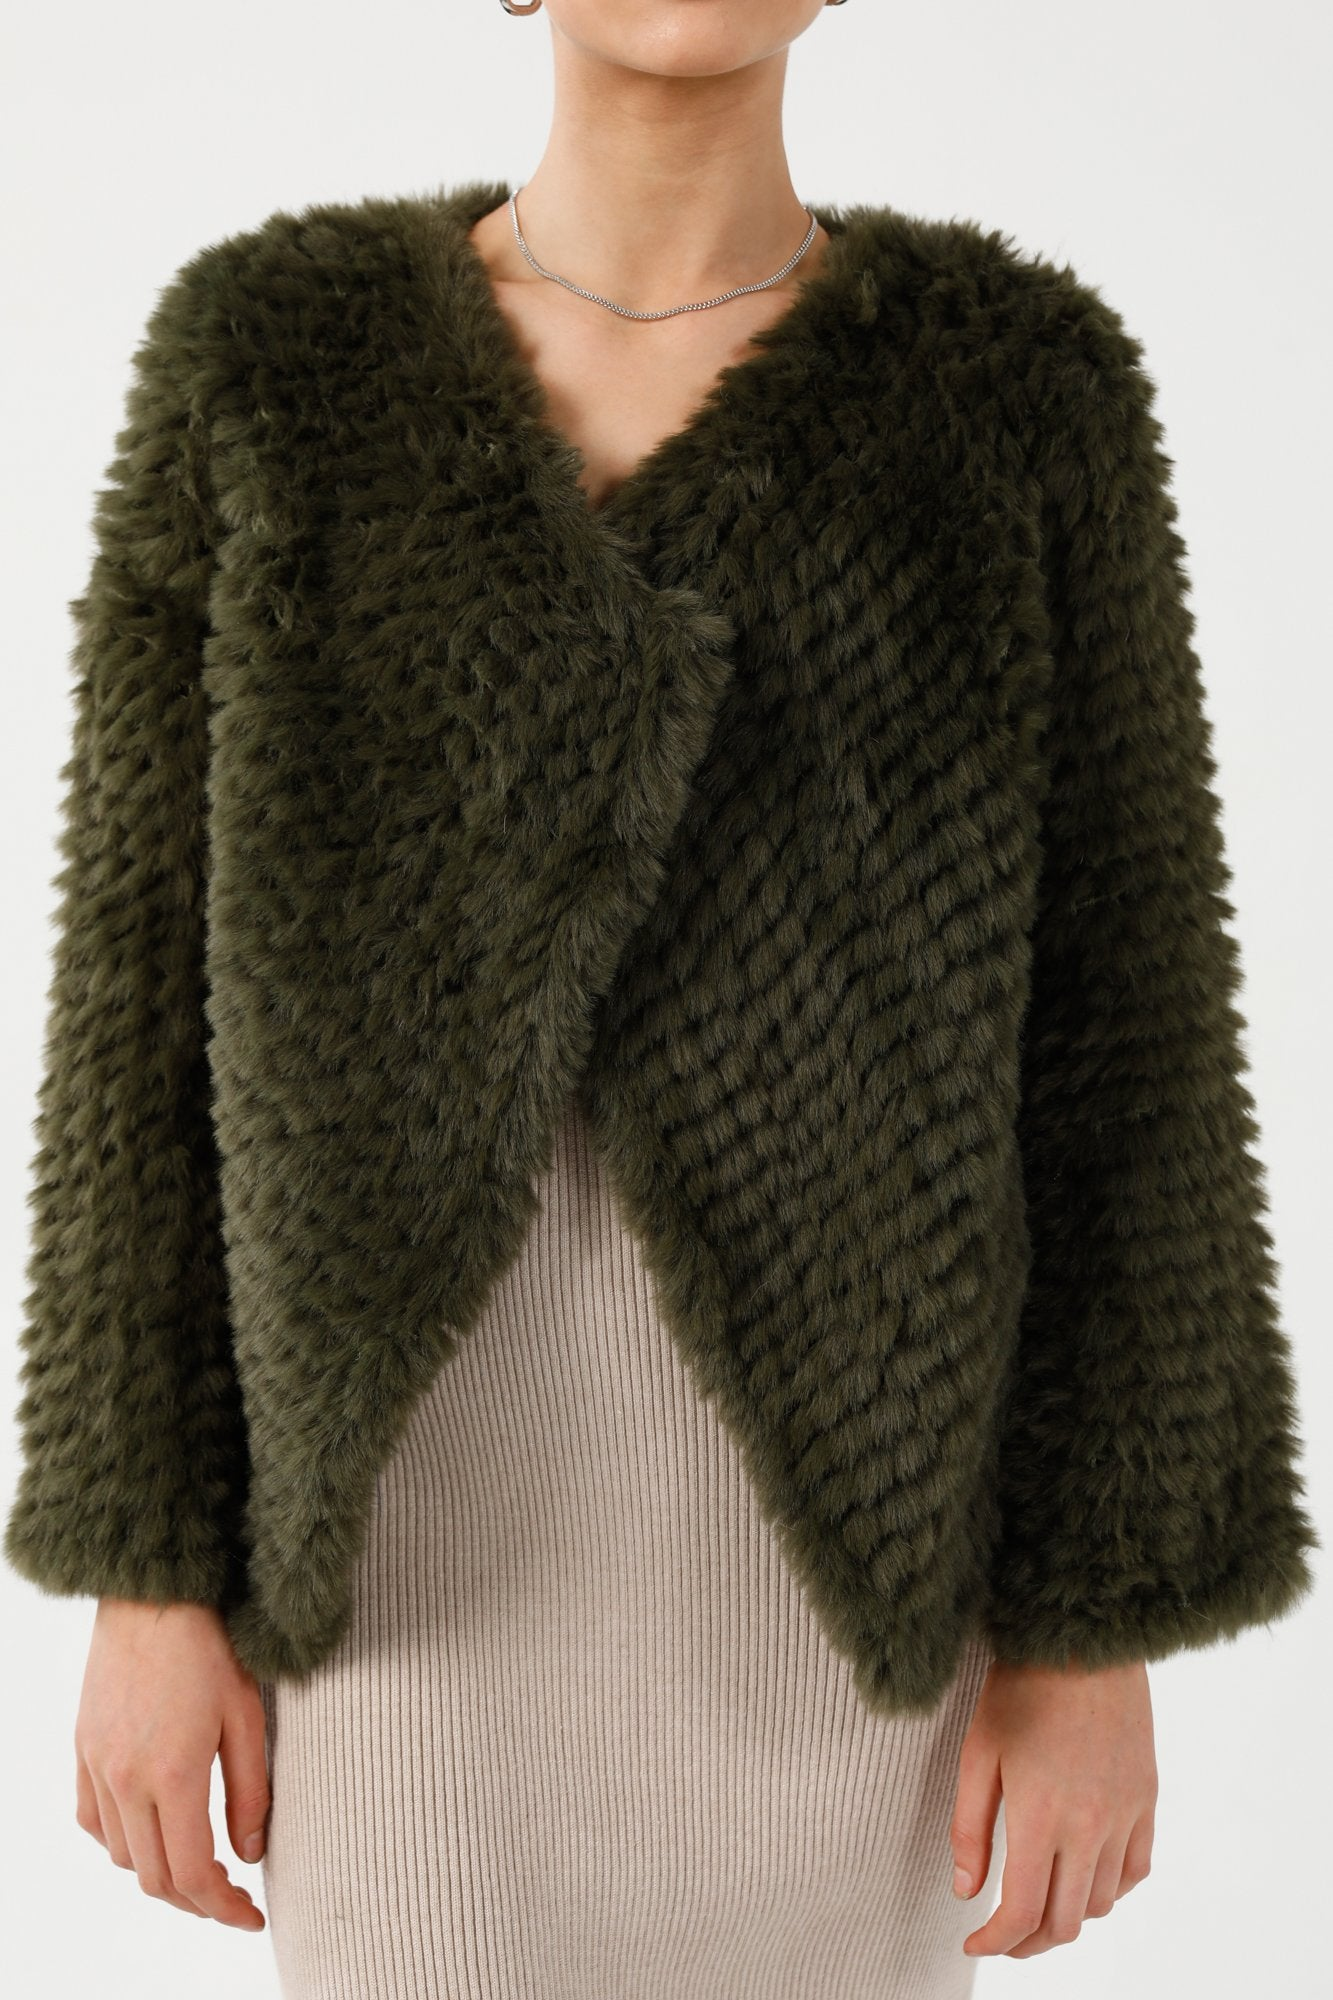 Faux Fur Soho Green Jacket